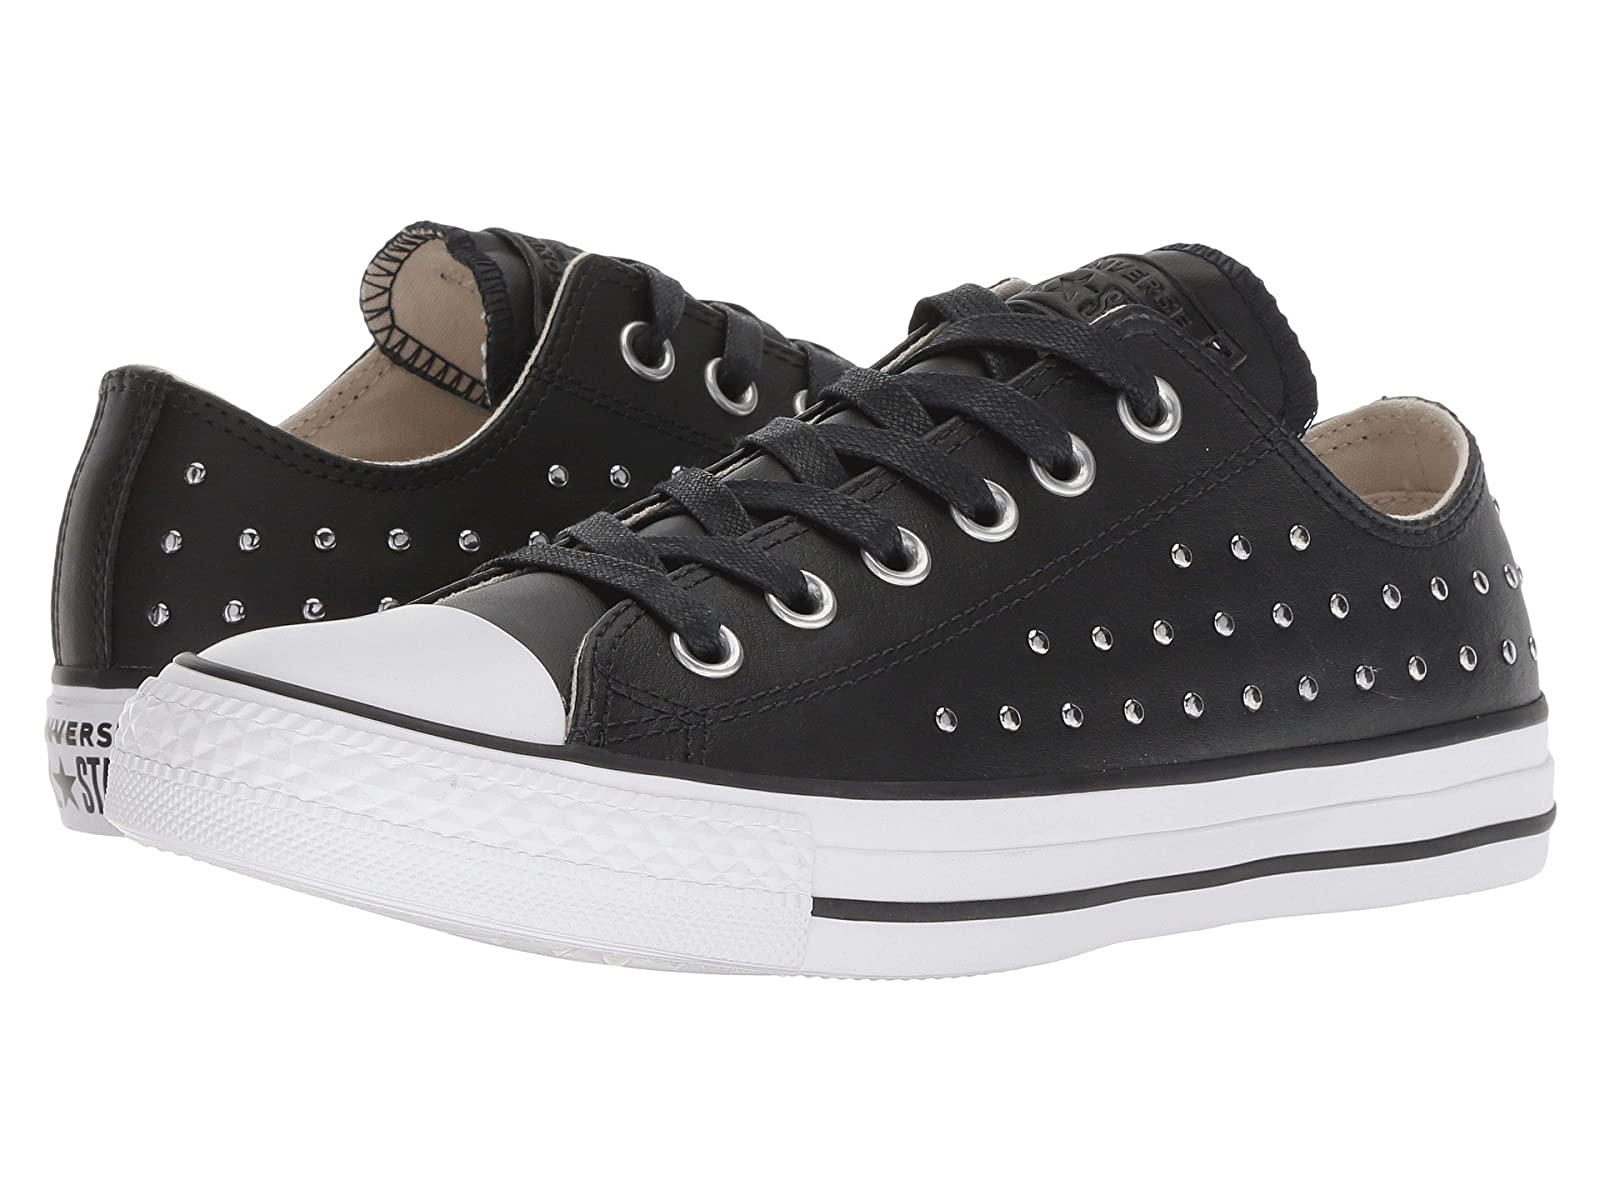 Converse Chuck Taylor All Star Leather Studs OxAtmospheric grades have affordable shoes